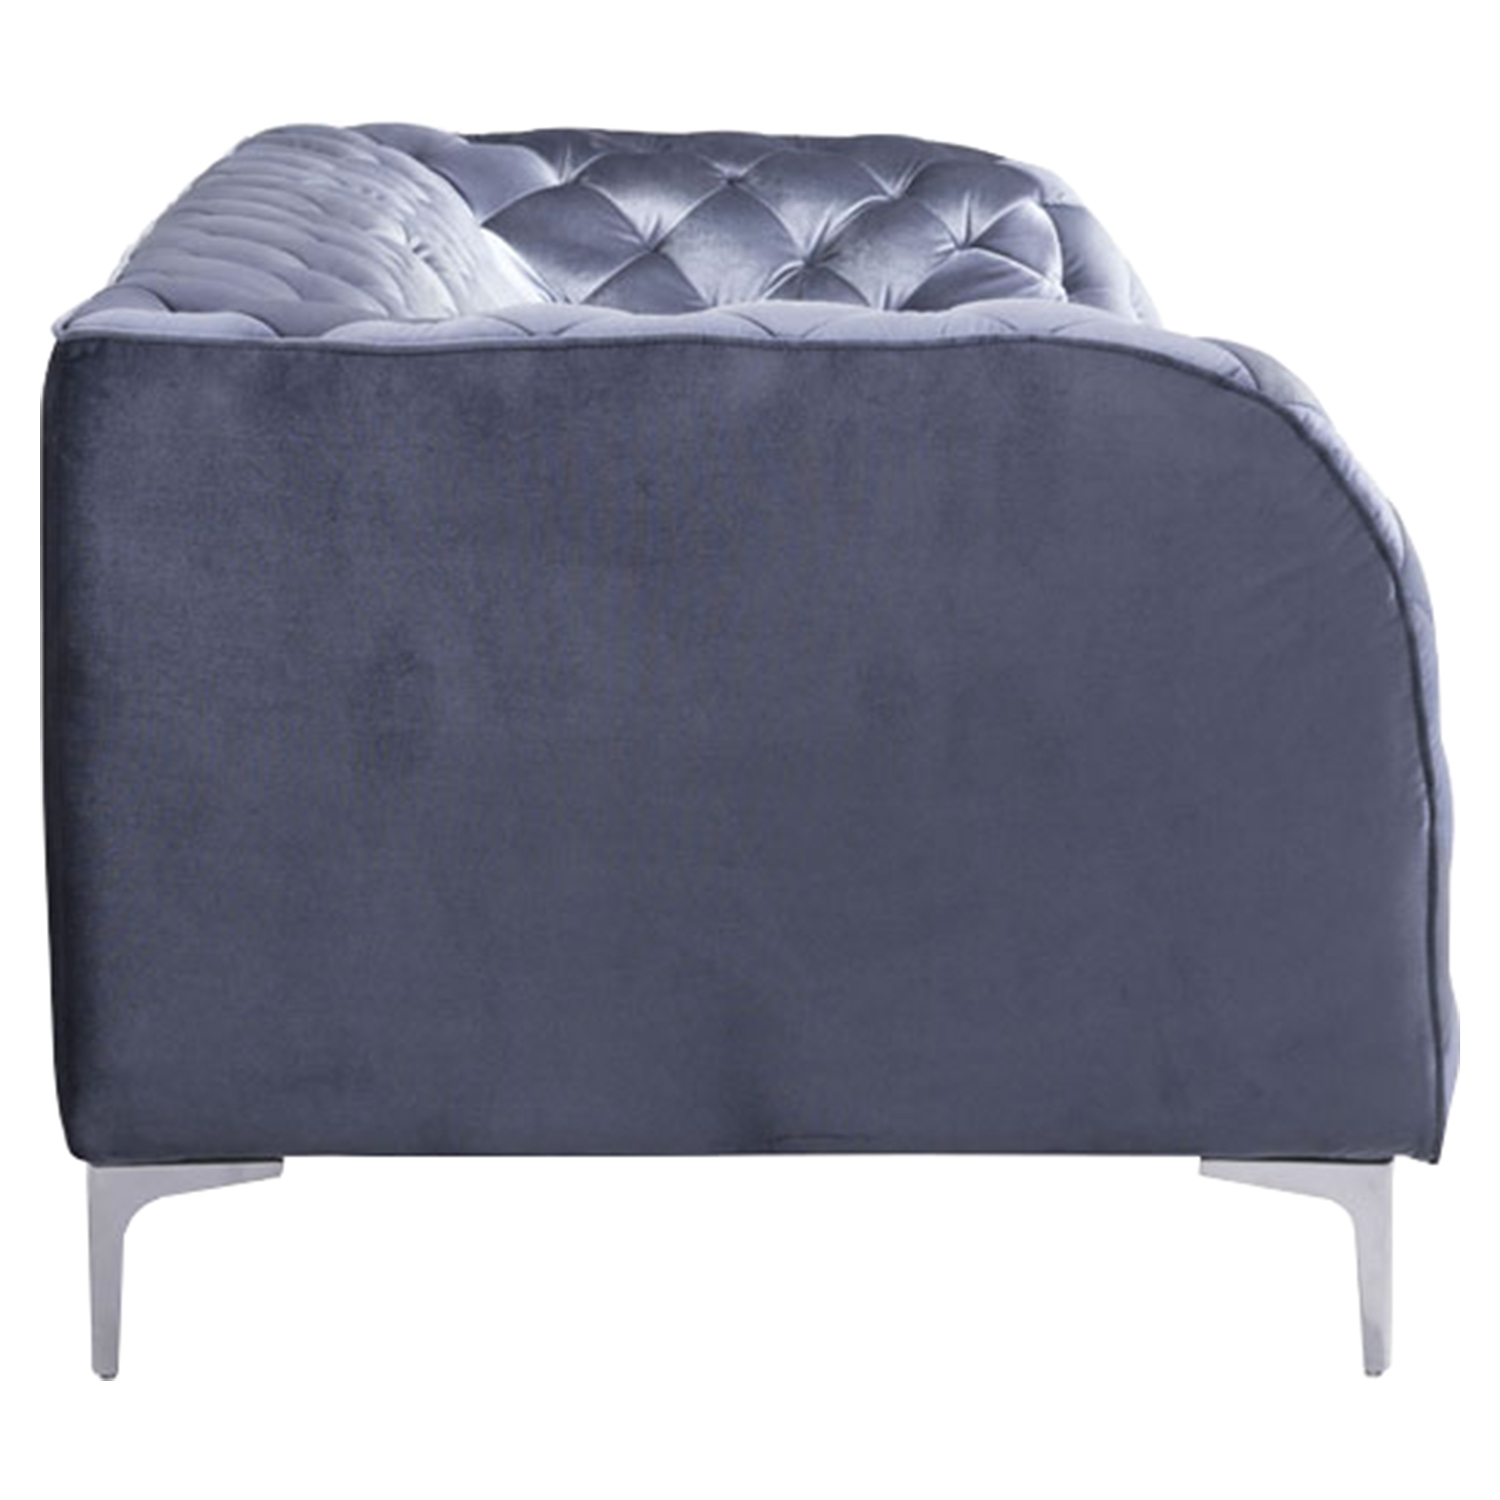 Providence Sofa - Tufted, Gray Velvet - ZM-900280